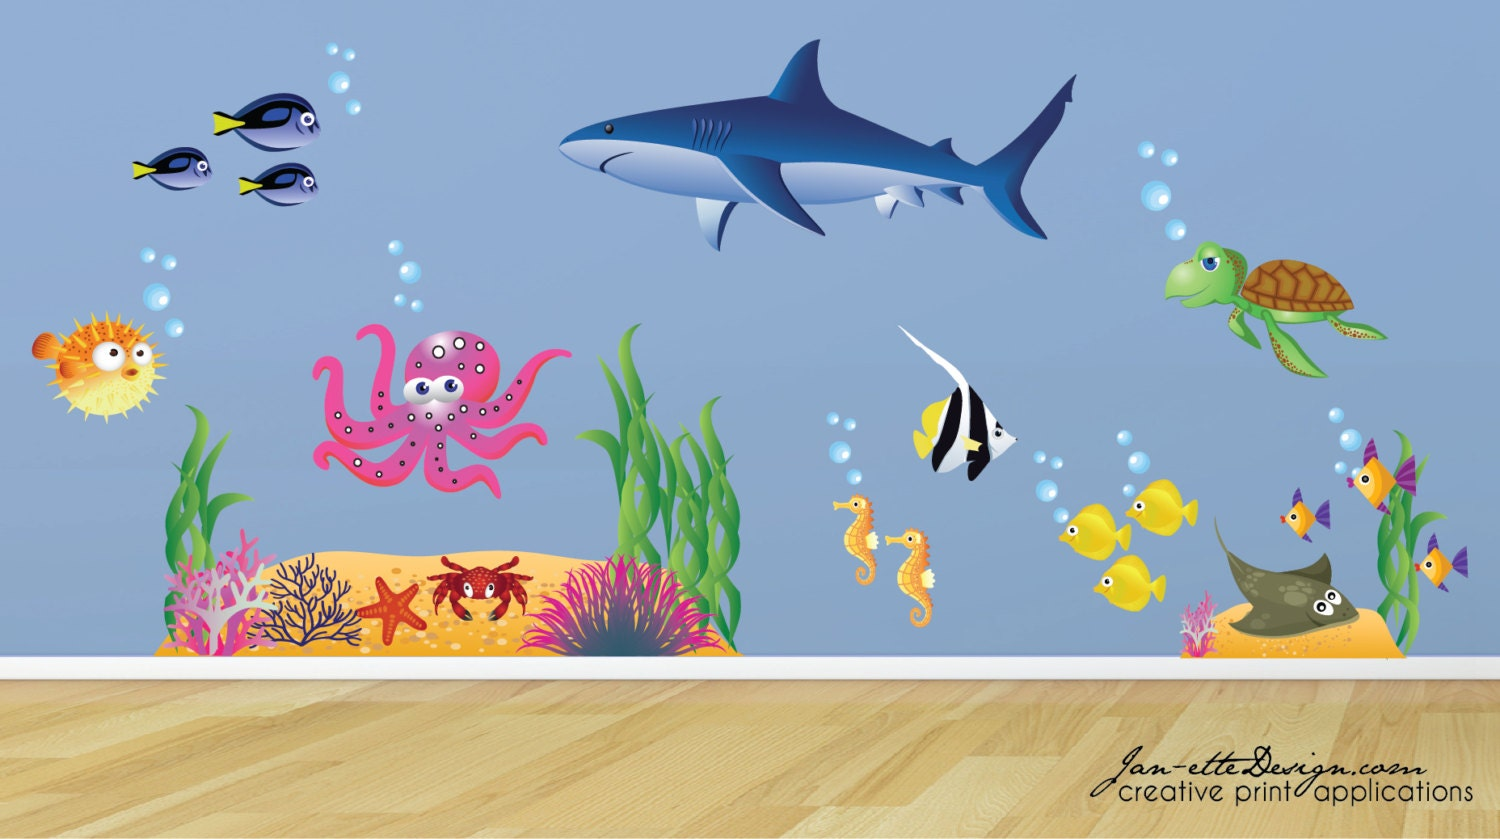 Ocean wall decalskids ocean theme wall stickersfish and zoom amipublicfo Gallery